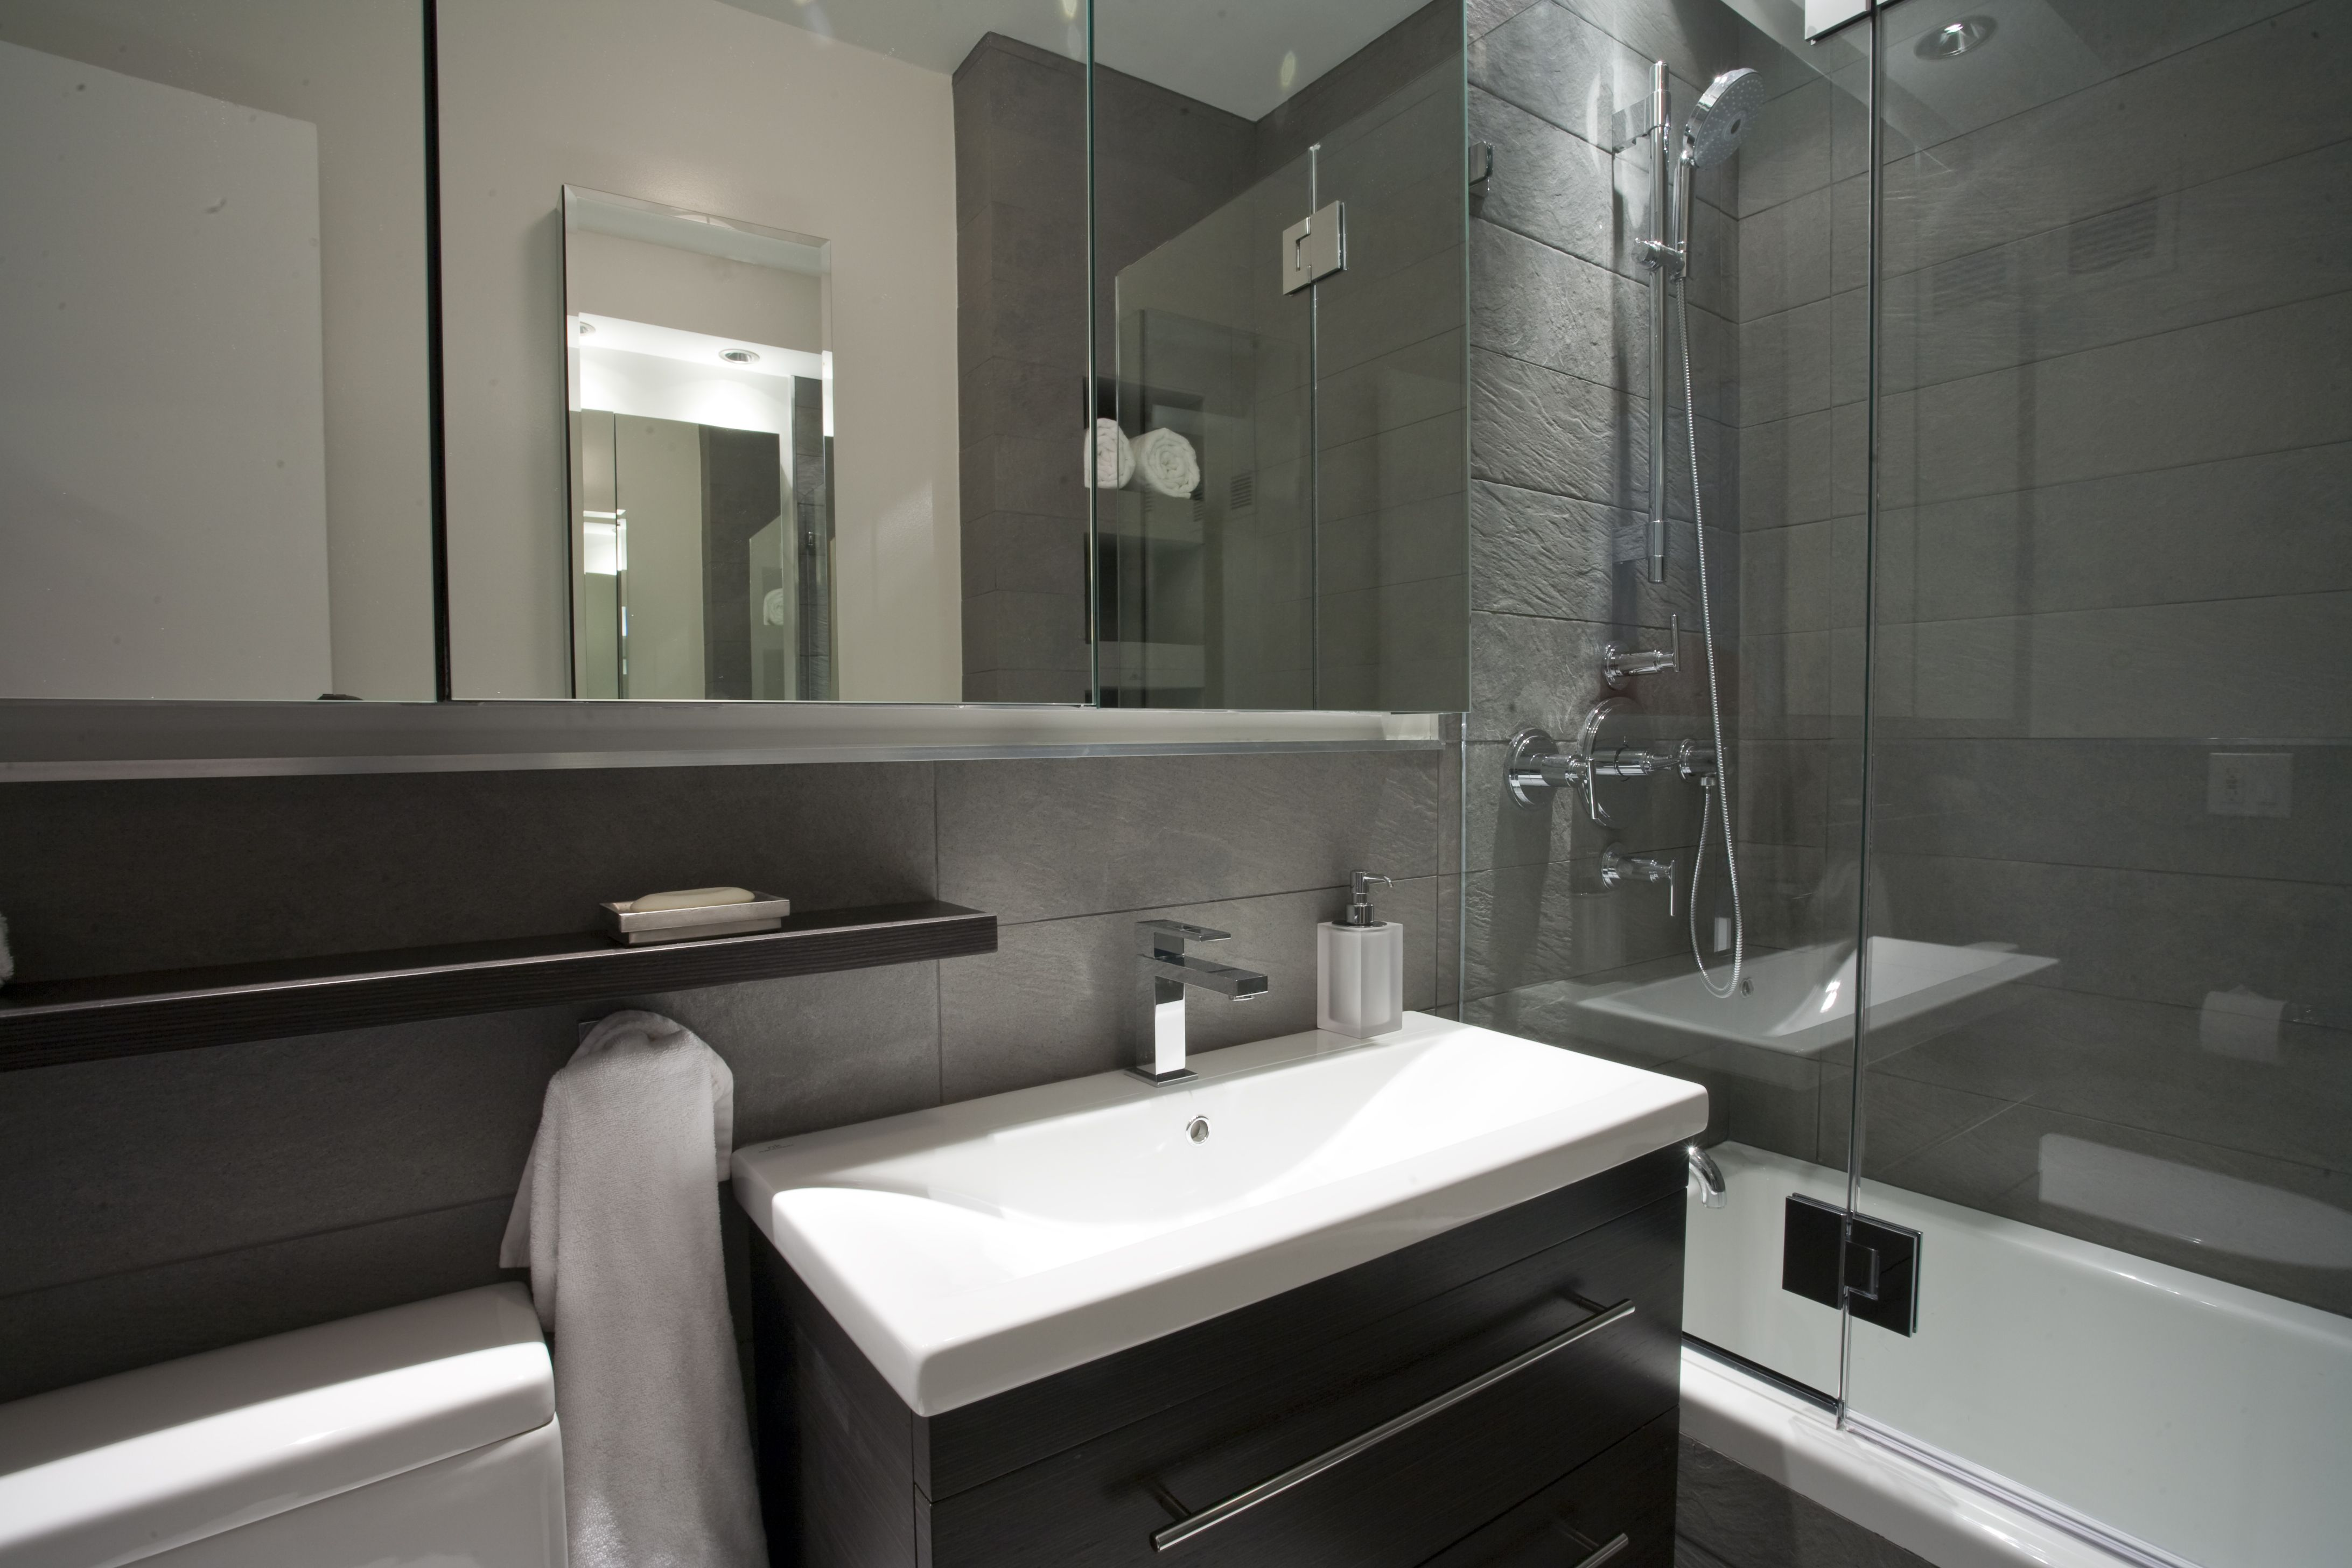 Small bathroom remodel ideas can include the